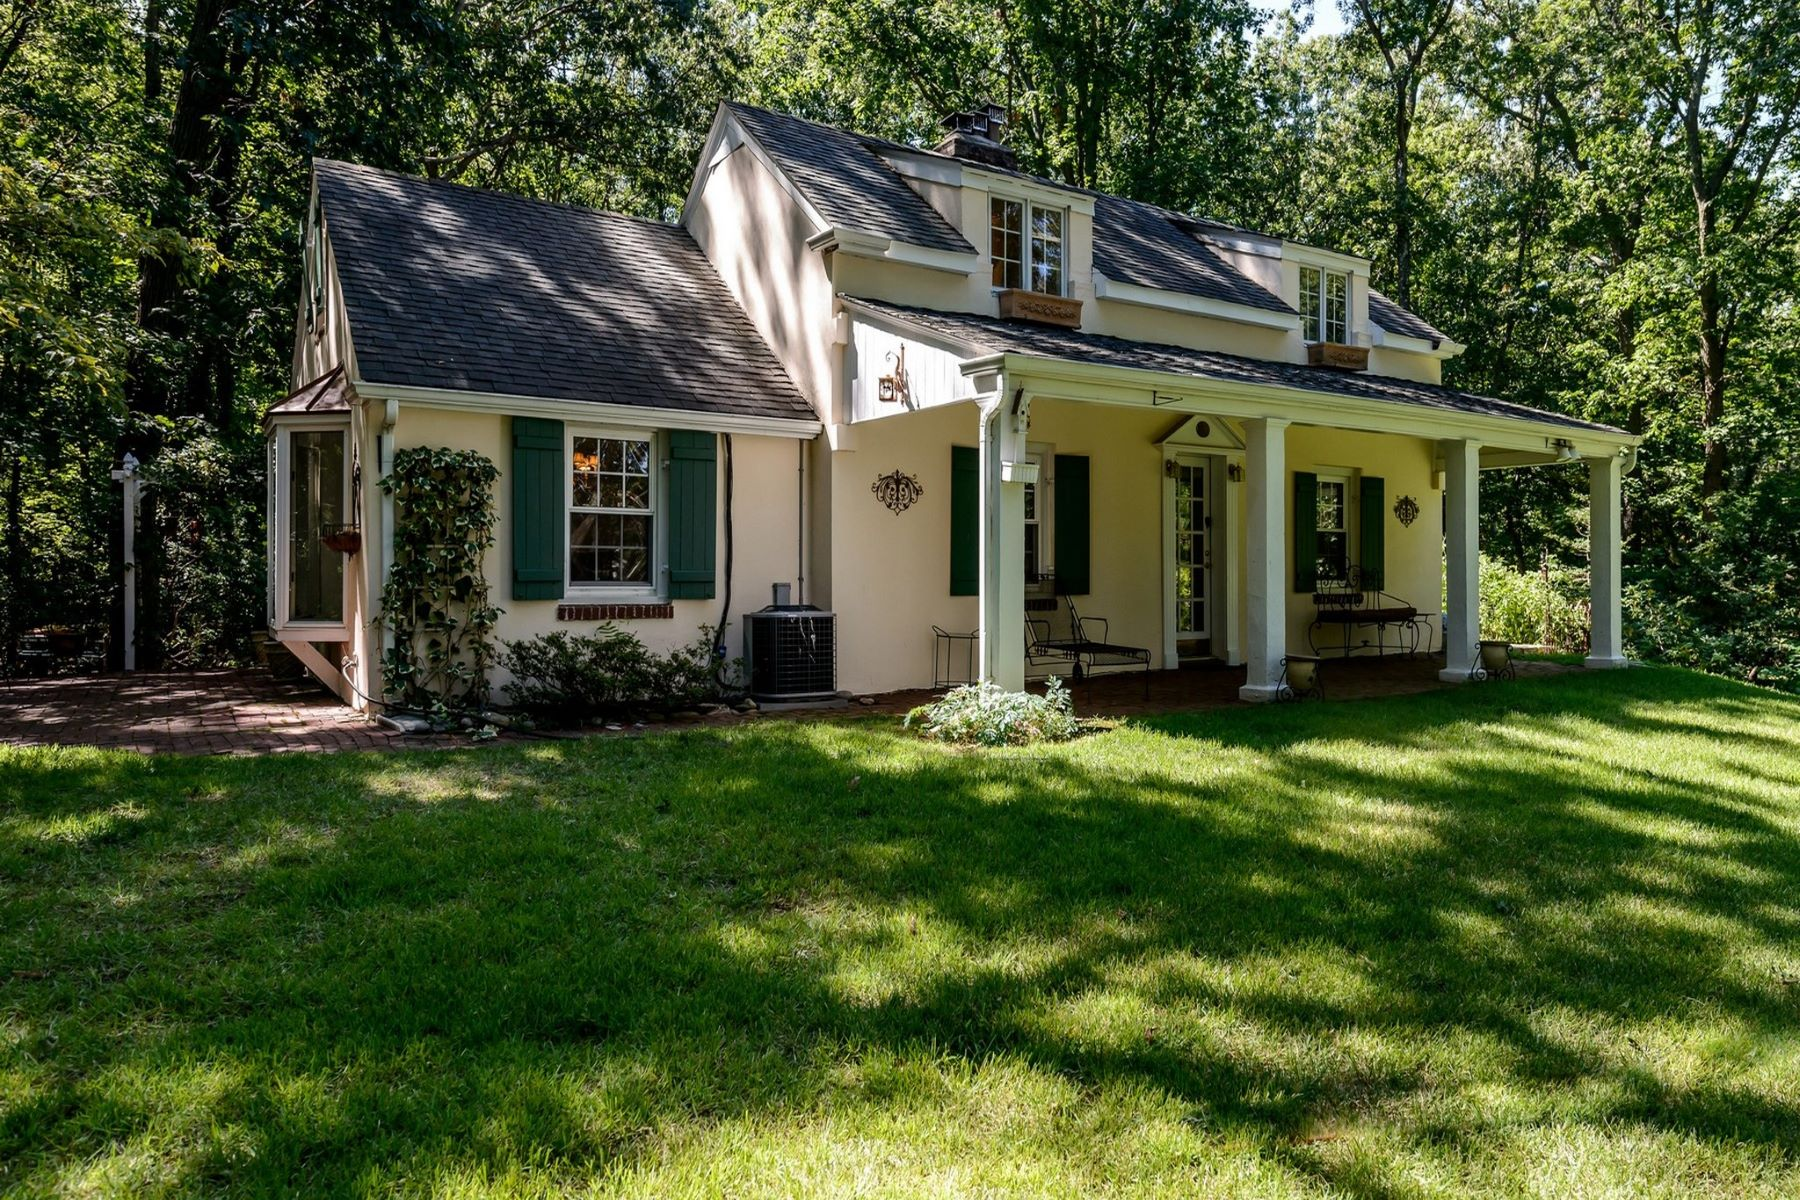 Single Family Homes for Active at Lloyd Neck 30 Forrest Dr Lloyd Neck, New York 11743 United States